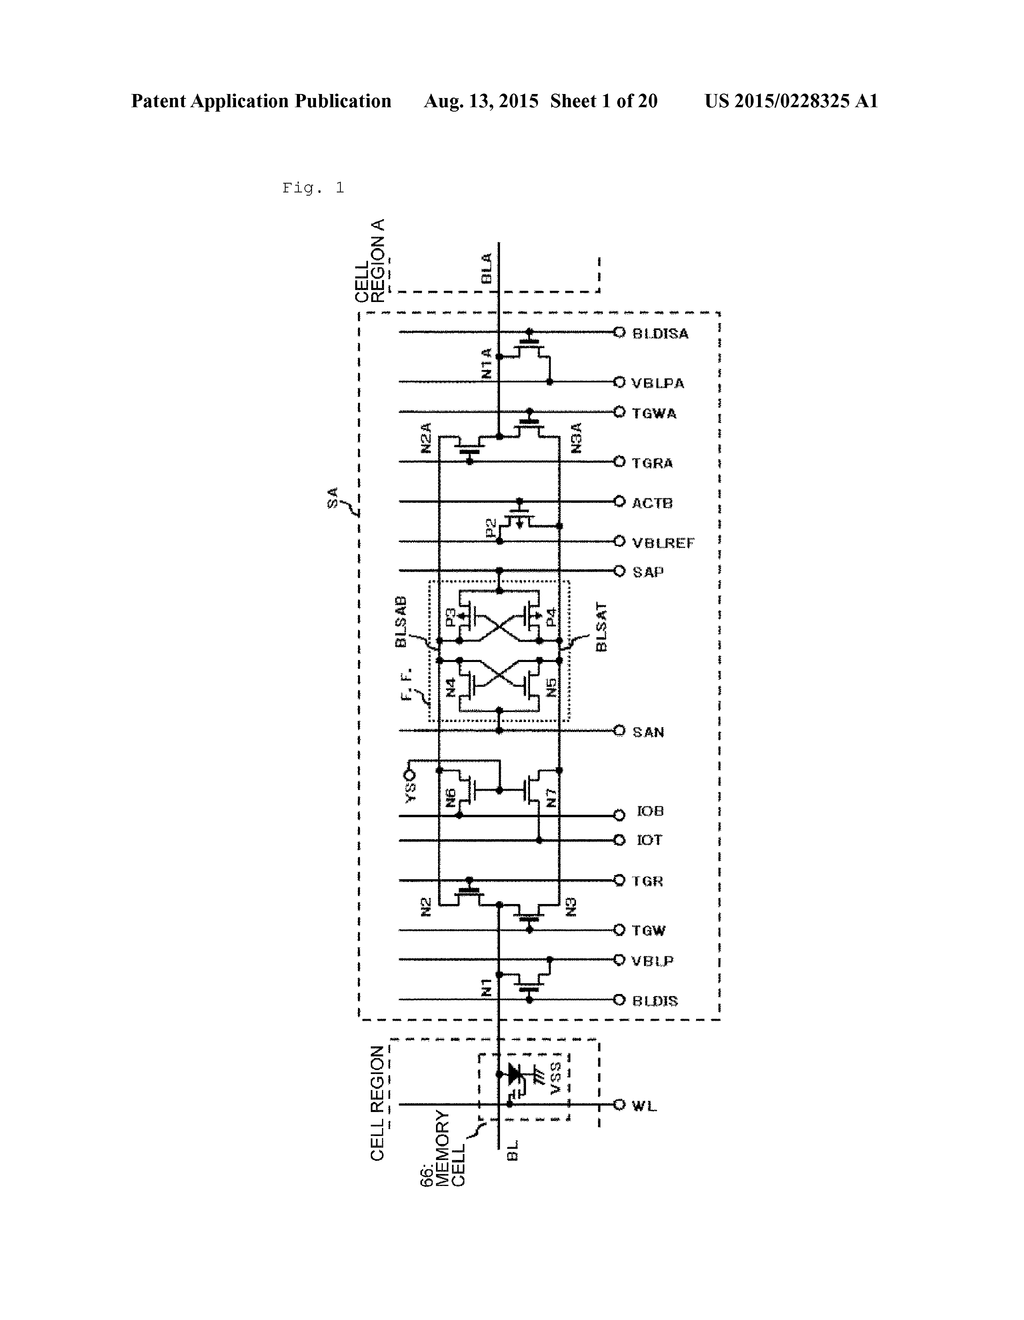 Fbc memory or thyristor memory for refreshing unused word line fbc memory or thyristor memory for refreshing unused word line diagram schematic and image 02 ccuart Choice Image